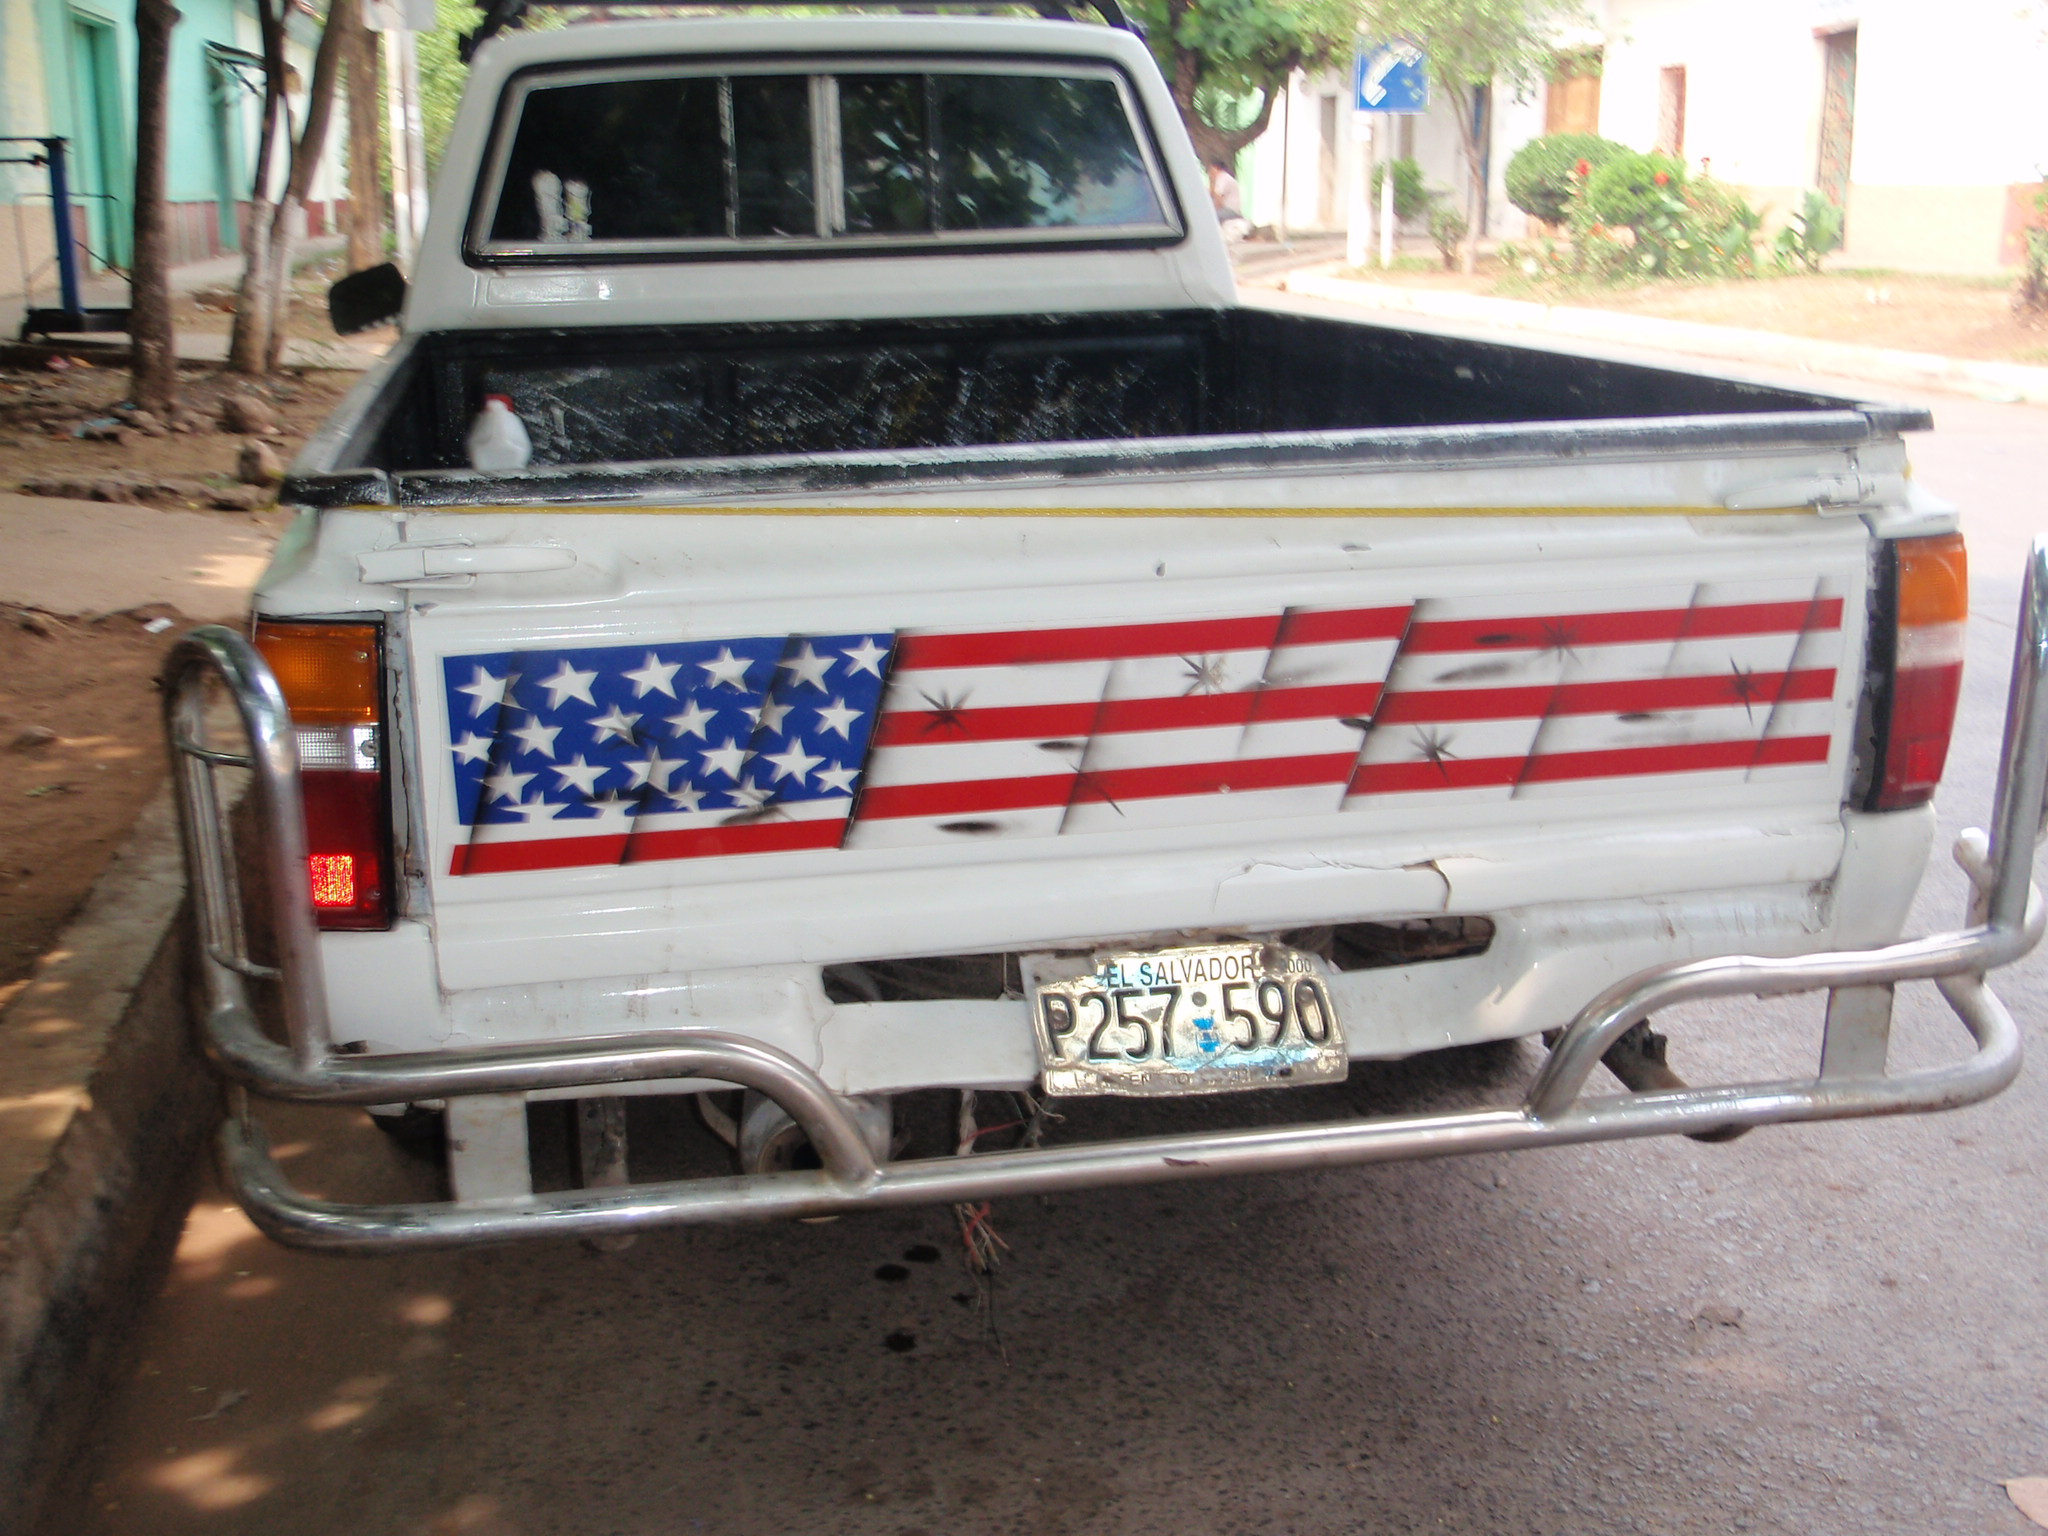 An American flag painted on a